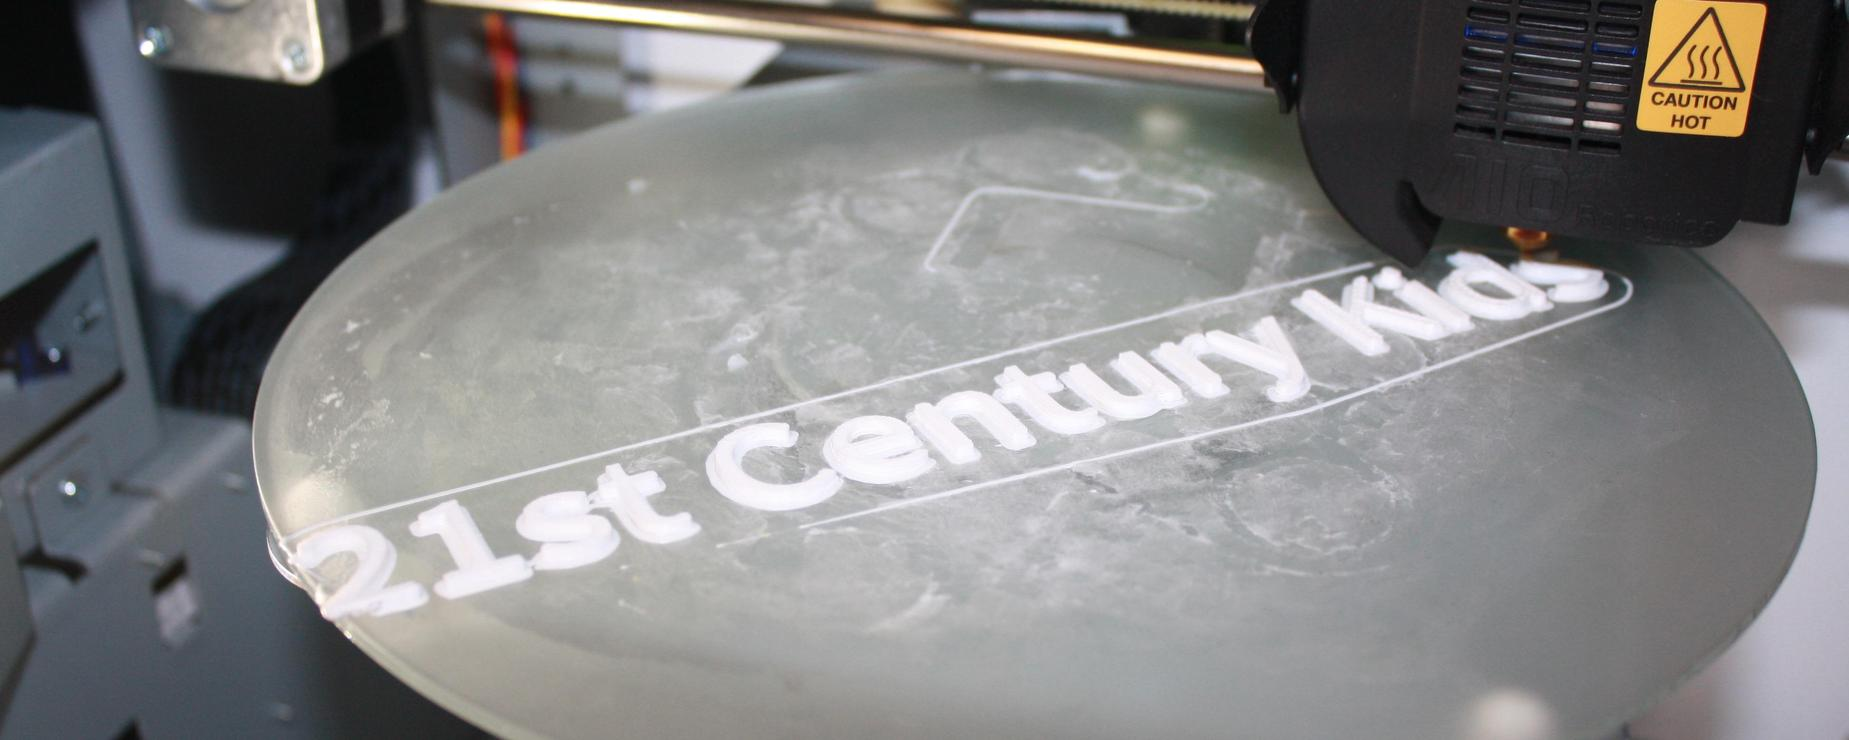 3D Printer printing out the 21st Century Kids logo